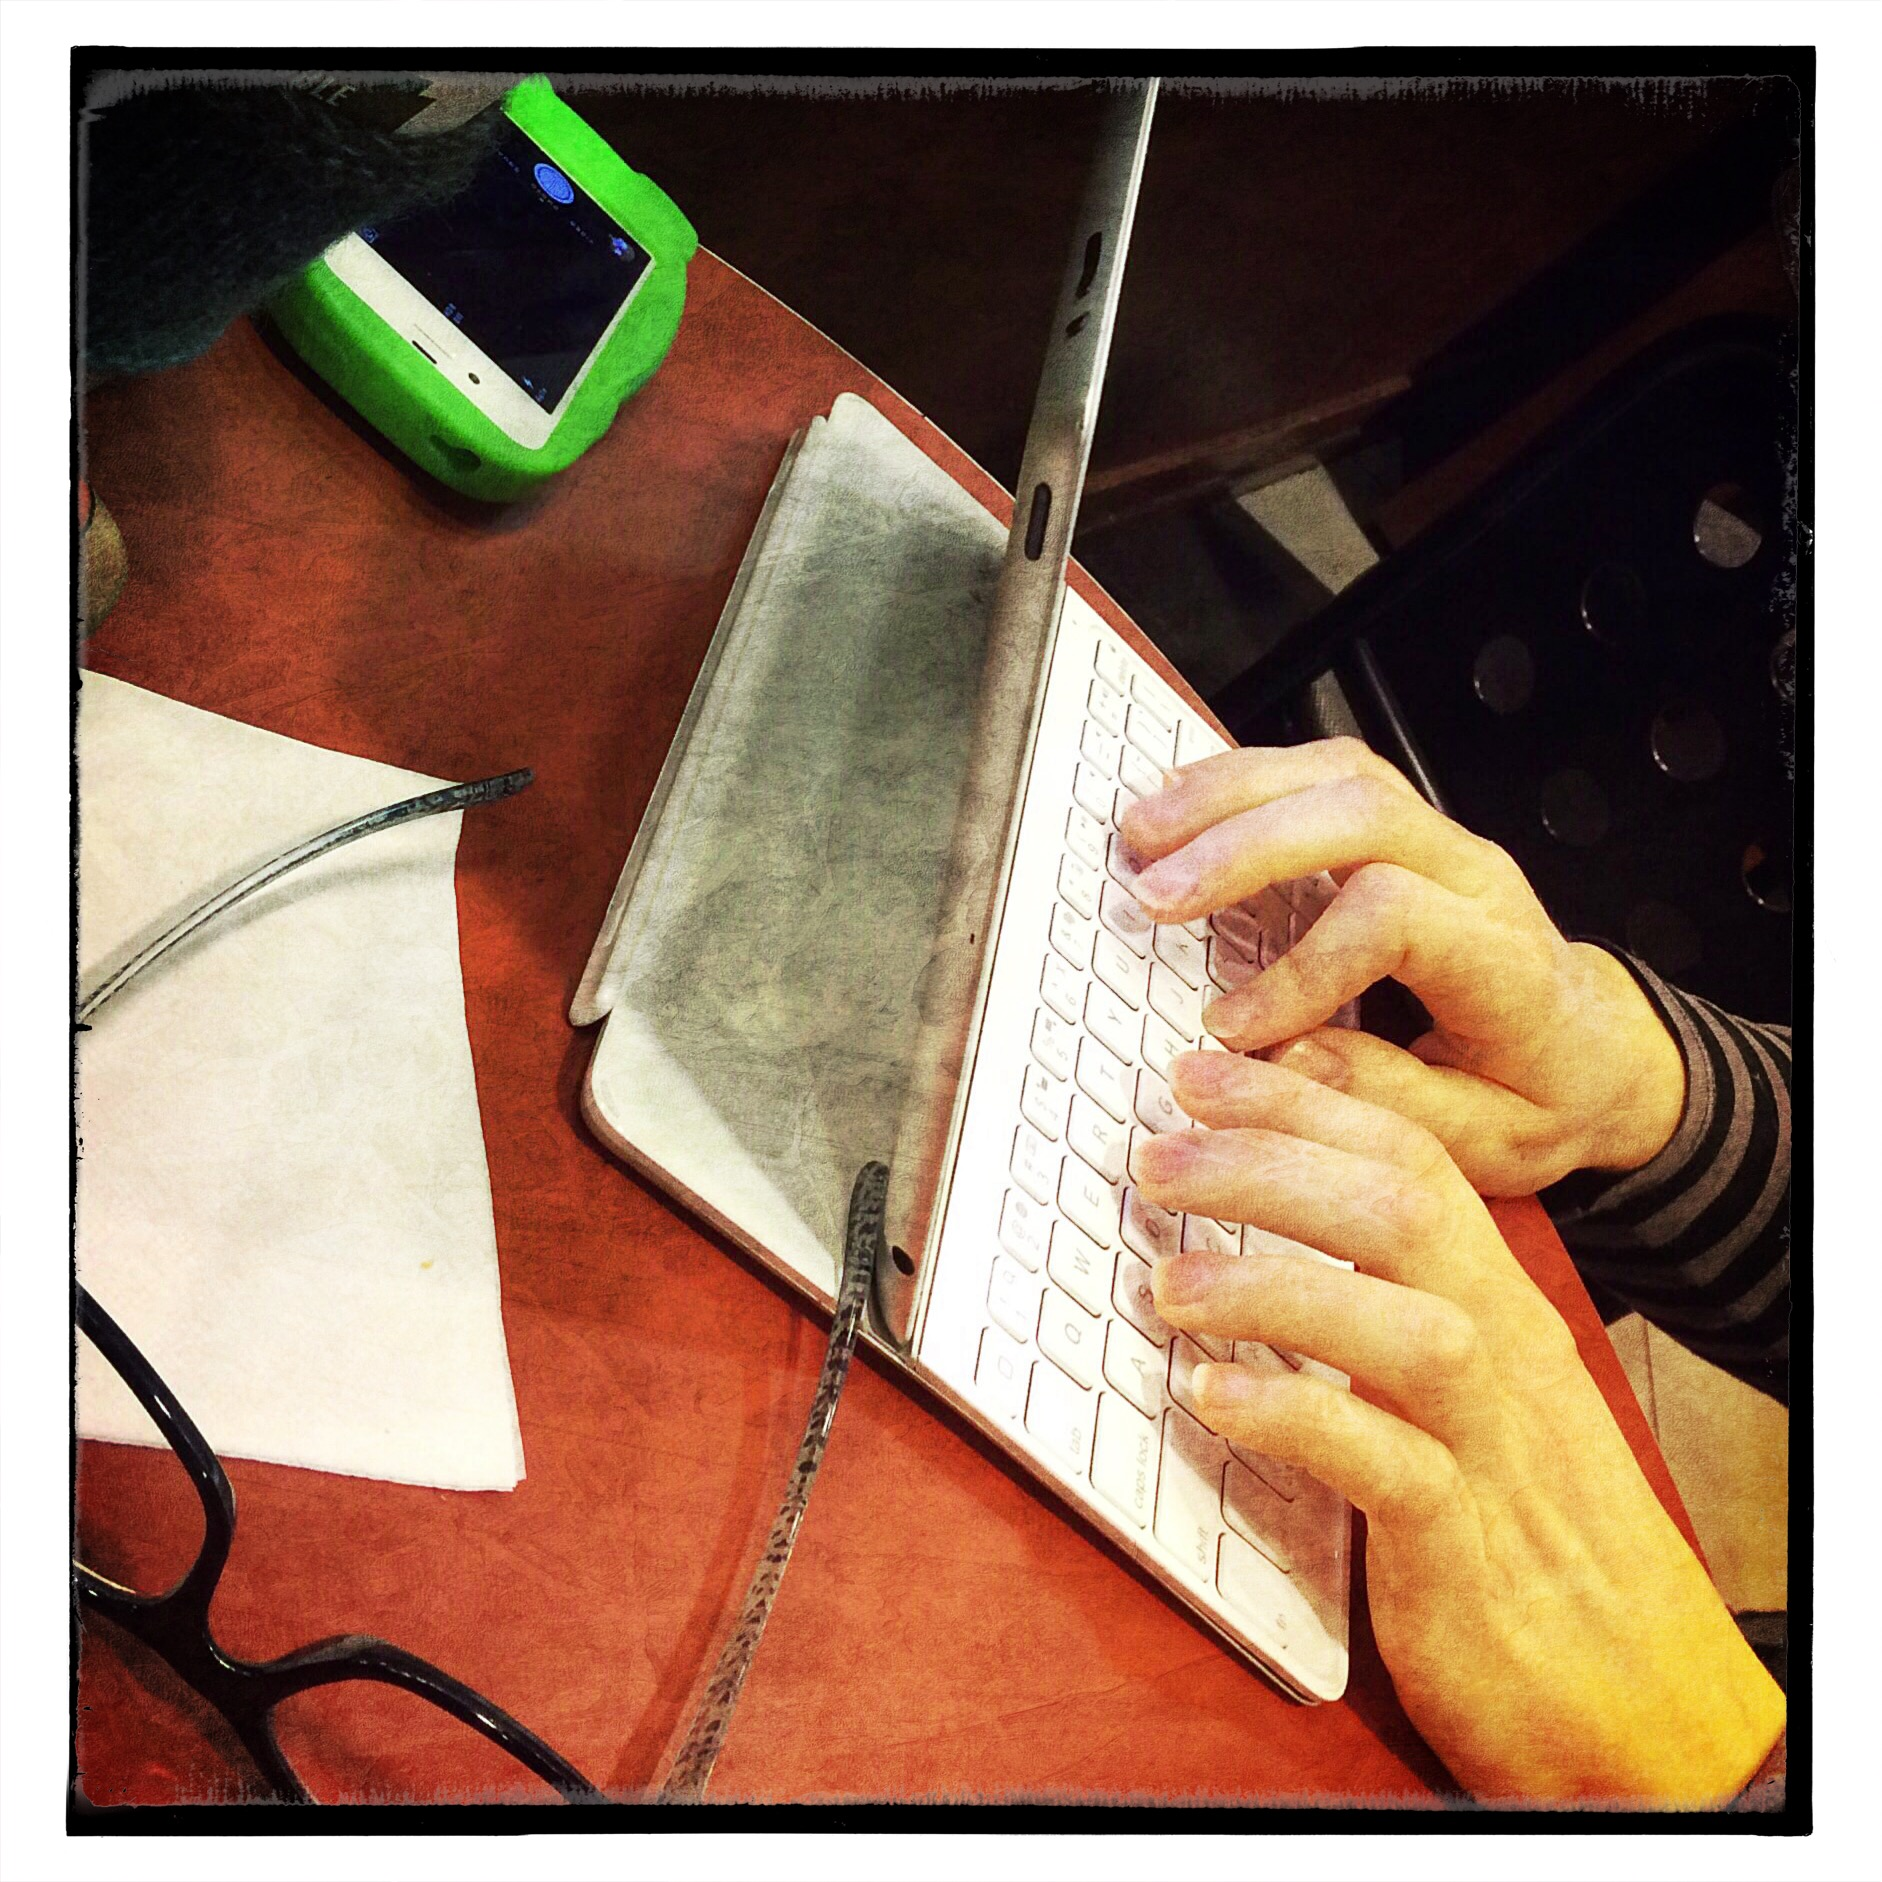 Those are DeeDee's hands on the typey thingy. Typing a shocker of a story. :)